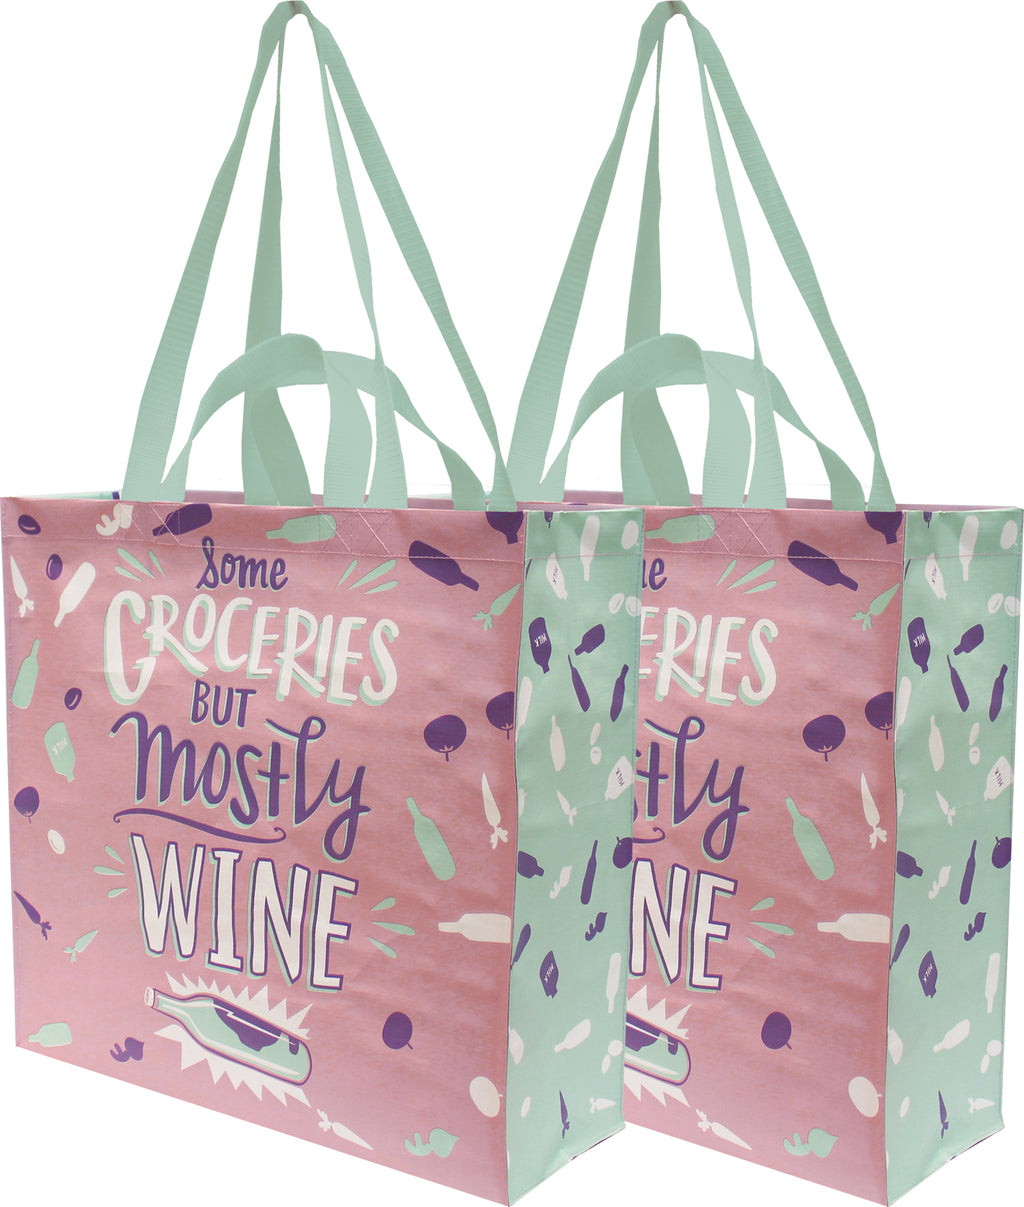 Mostly Wine Tote